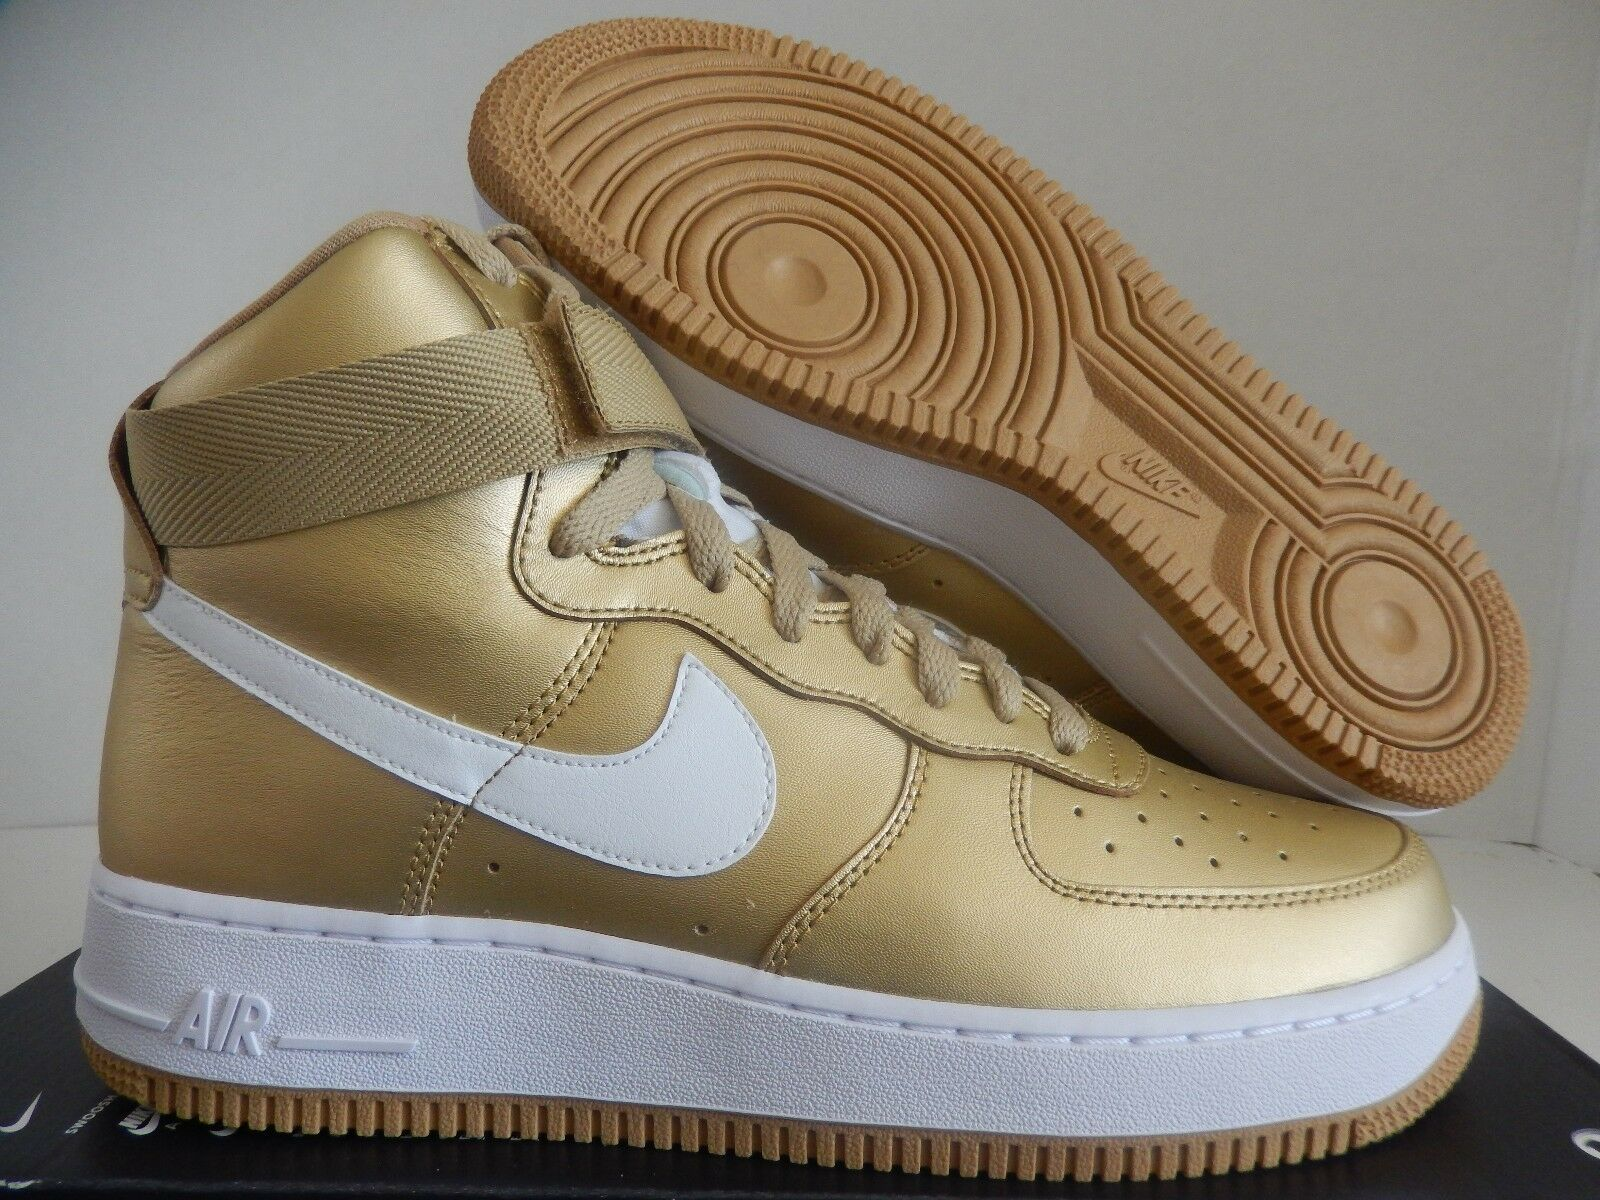 NIKE AIR FORCE 1 HI HIGH RETRO QS METALLIC GOLD-WHITE SZ 9 [823297-700]